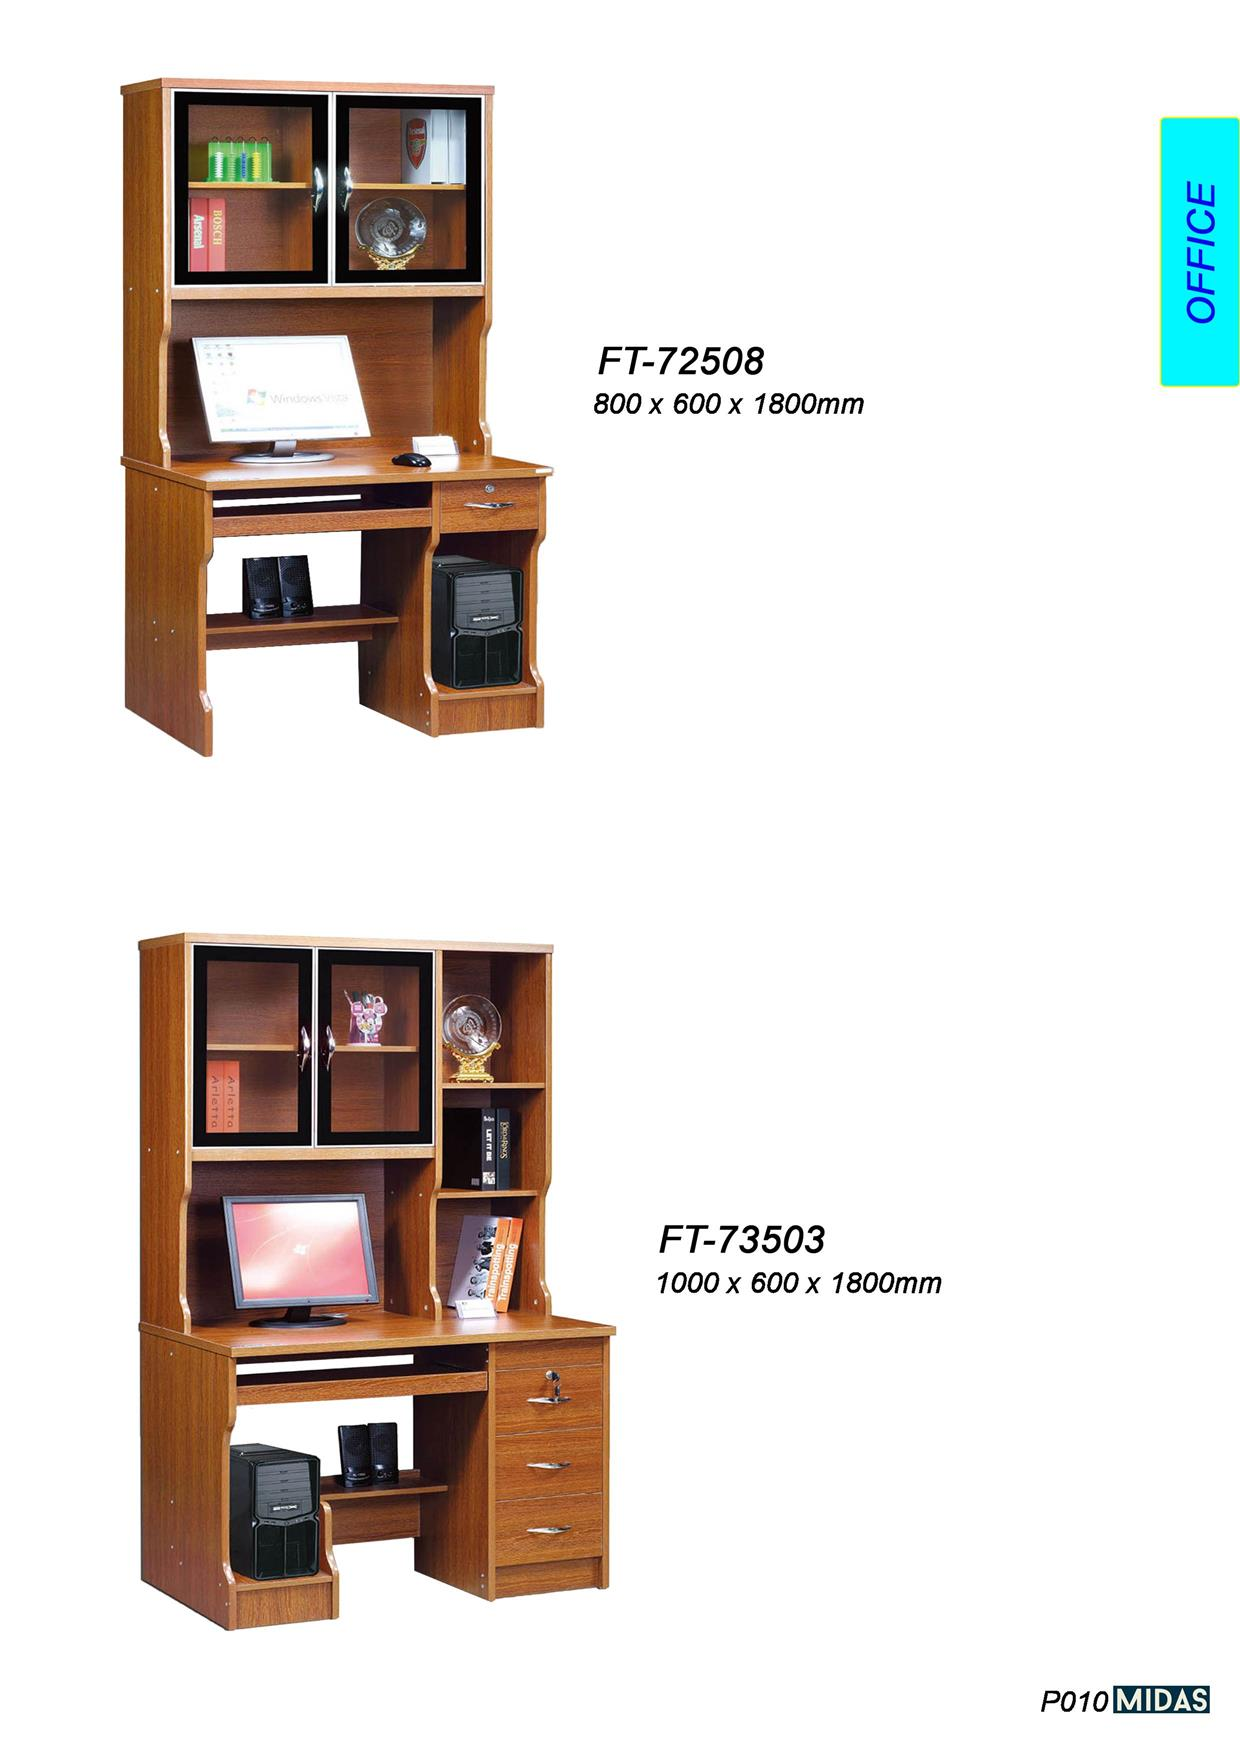 FT-73503 WOODEN OFFICE STUDY LAPTOP RACK TABLE DRAWER CHAIR CLASSIC